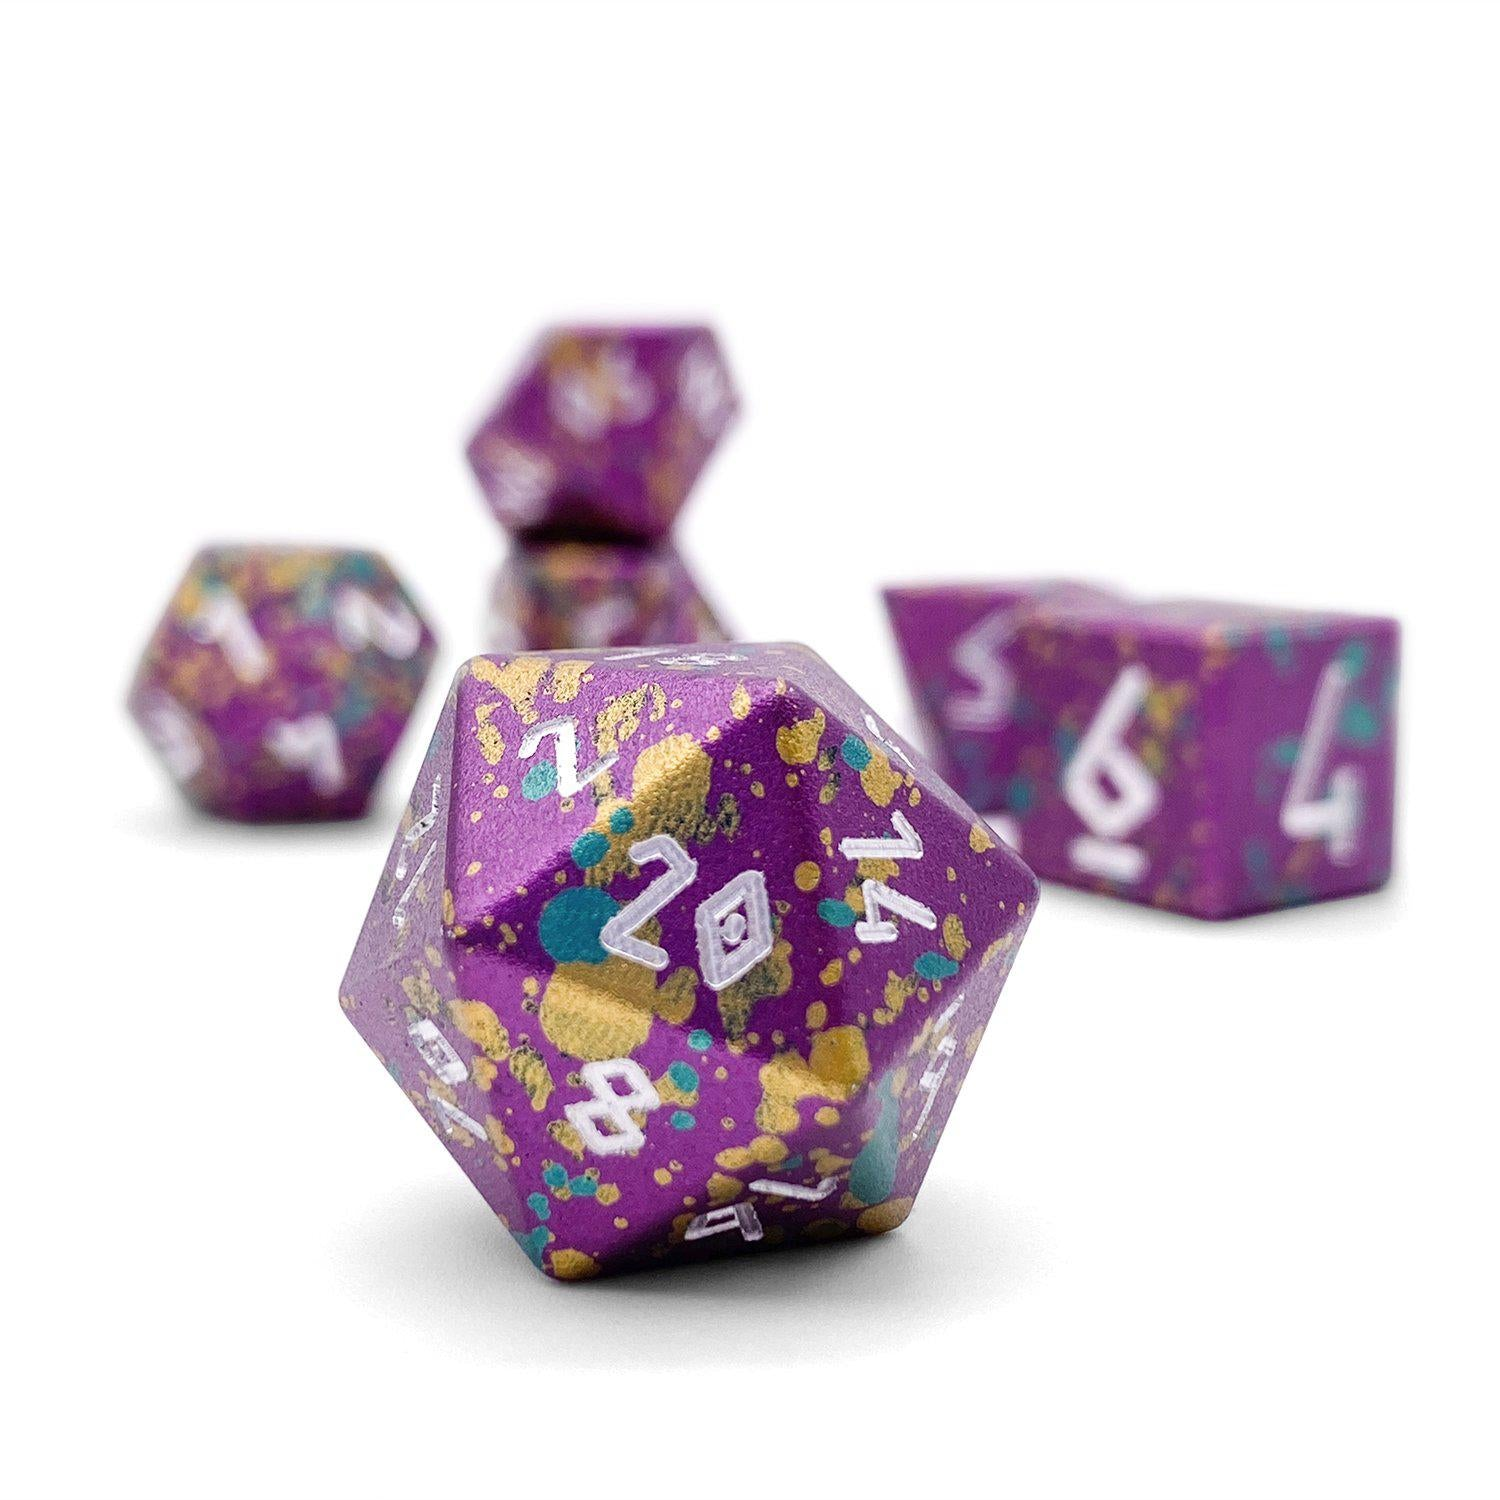 Mardi Gras - Wondrous Dice Set of 7 RPG Dice by Norse Foundry Precision Polyhedral Dice Set